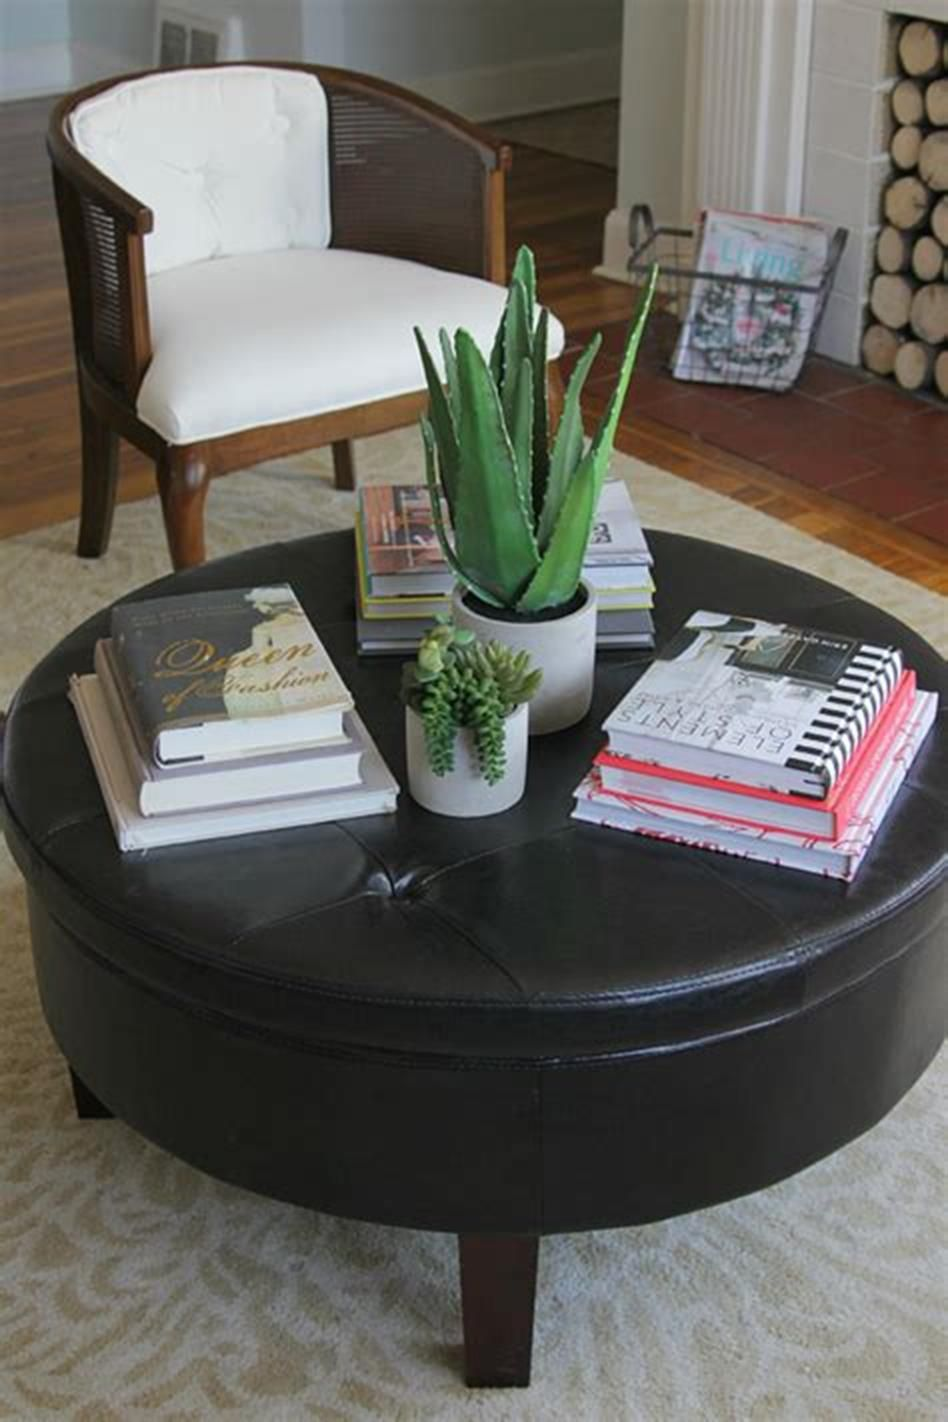 46 Awesome Coffee Table Tray Decor Ideas 23 Round Coffee Table Decor Cool Coffee Tables Coffee Table Decor Tray [ 1422 x 948 Pixel ]